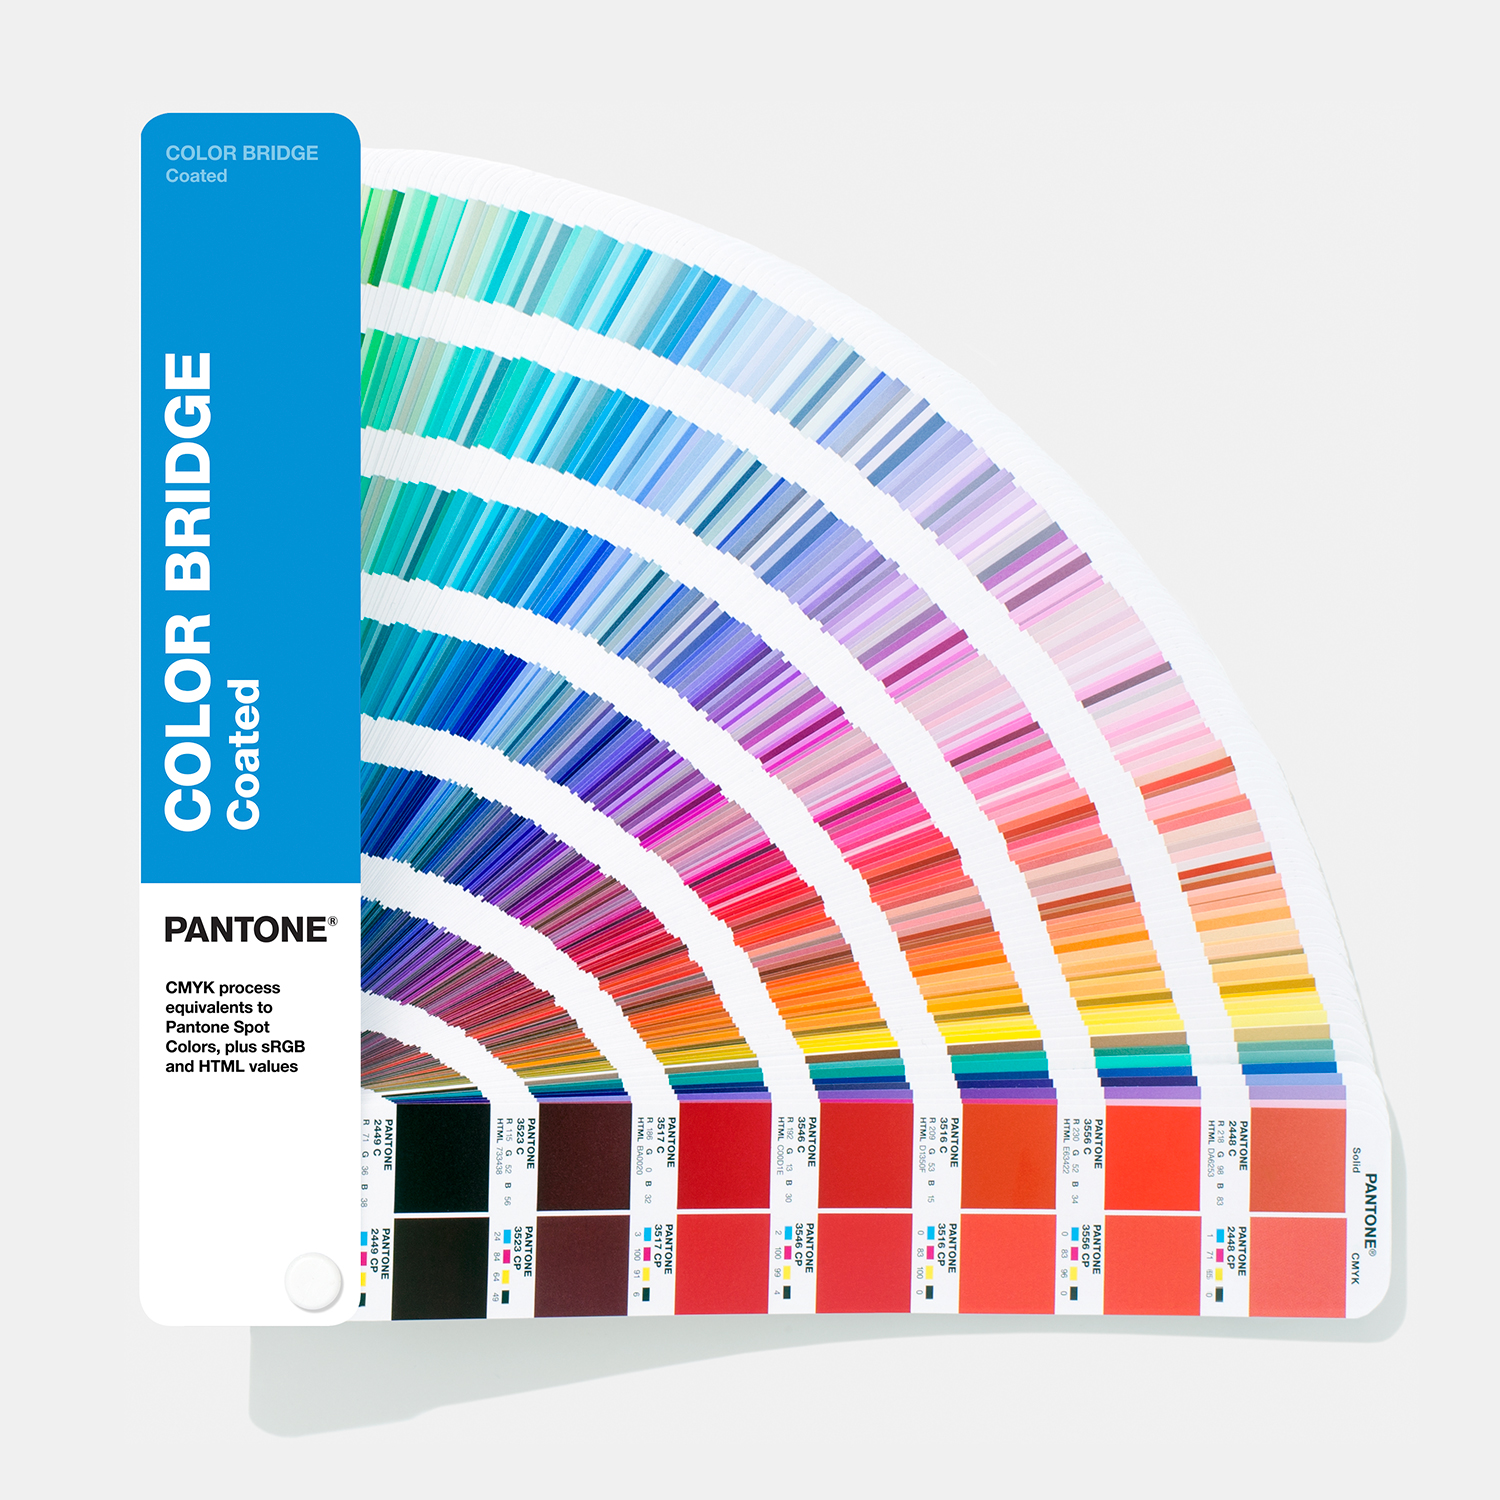 Pantone Color Bridge Guide Coated Translate Pantone Colors Into Cmyk Html Rgb Gg6103a 2019 Edition Pantone Canada Polycolors,How To Clean A Kitchen Sink Drain That Smells